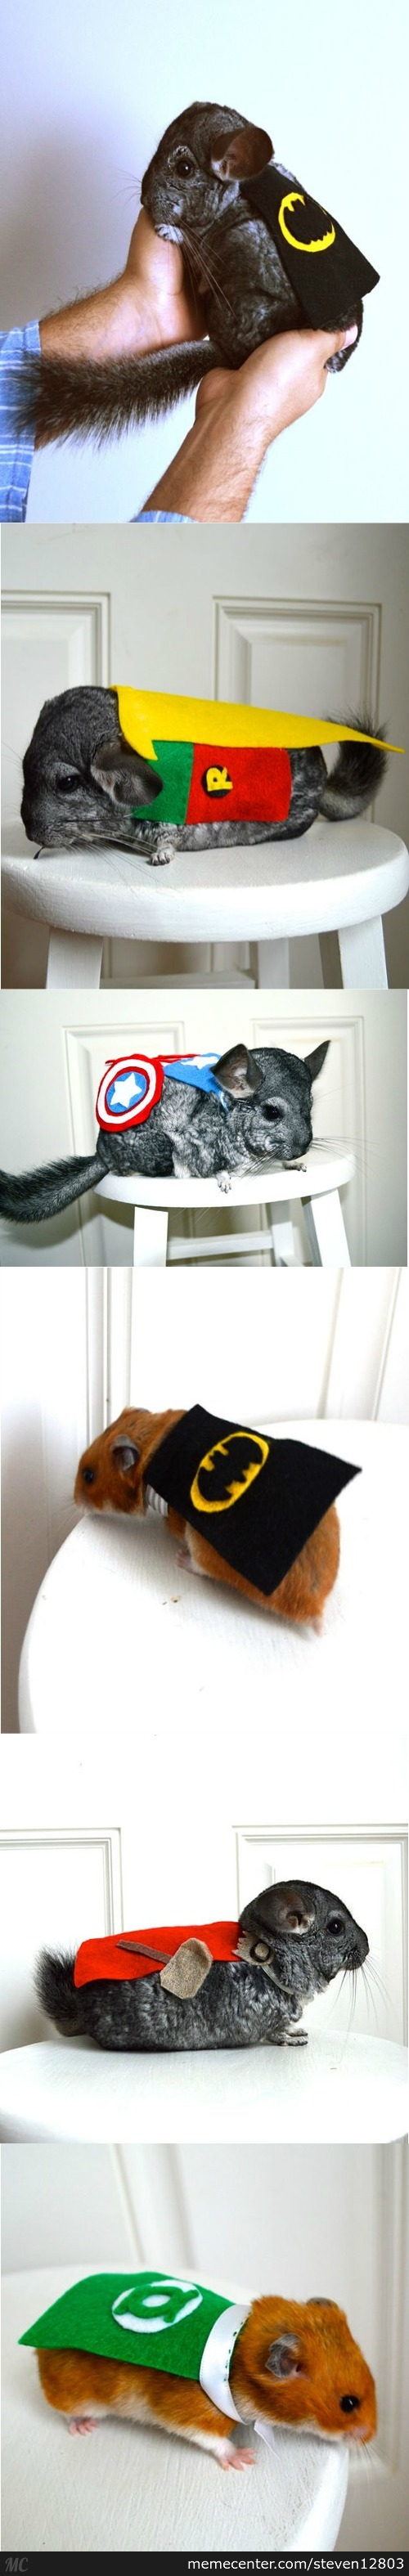 Chinchillas Dressed As Superheroes